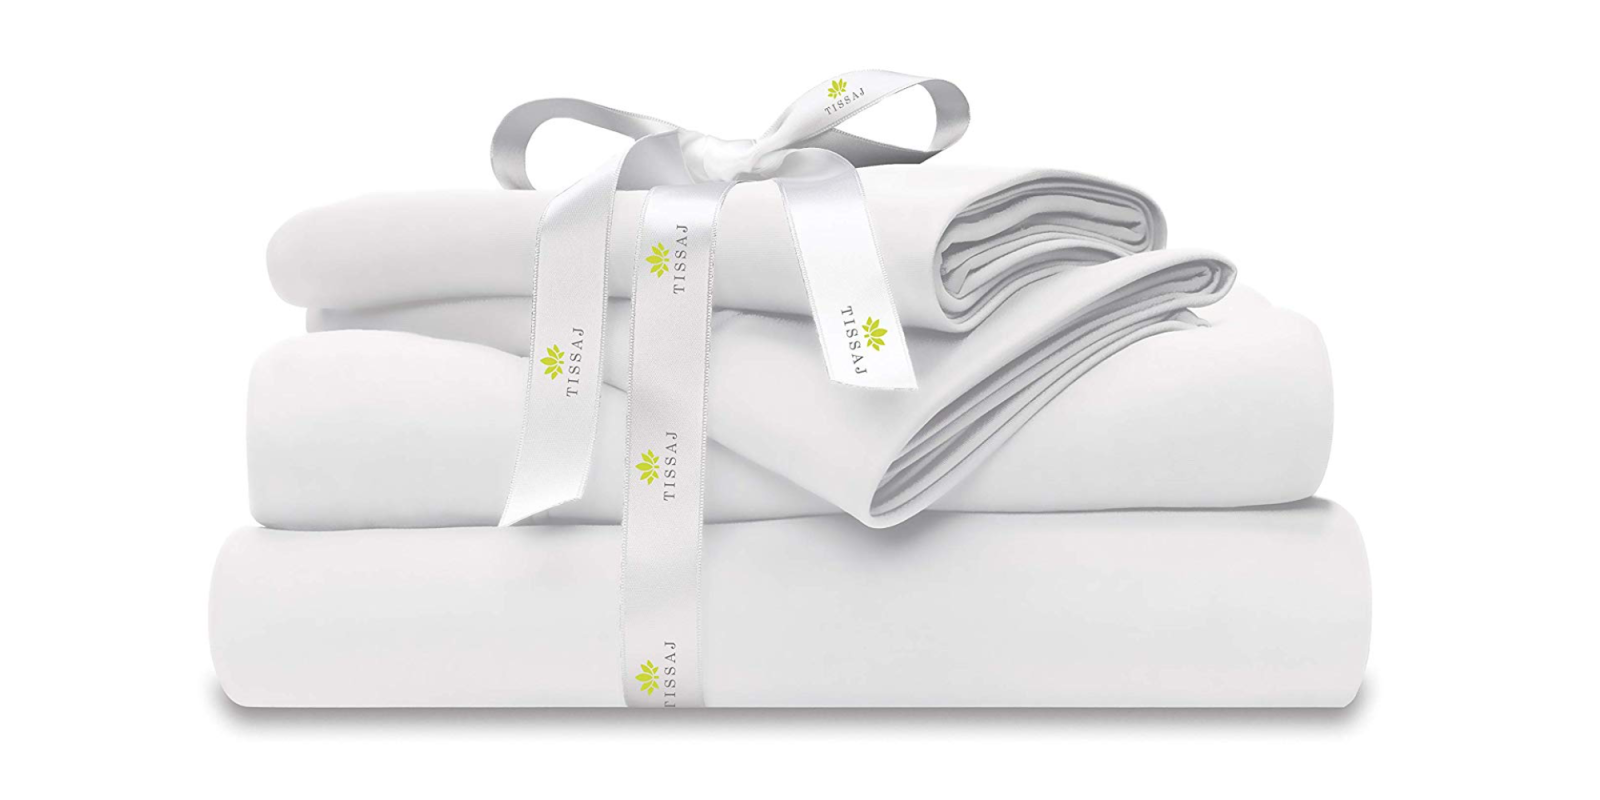 Mattress With No Sheets Png - No you're not dreaming, this organic cotton sheet set is down to ...